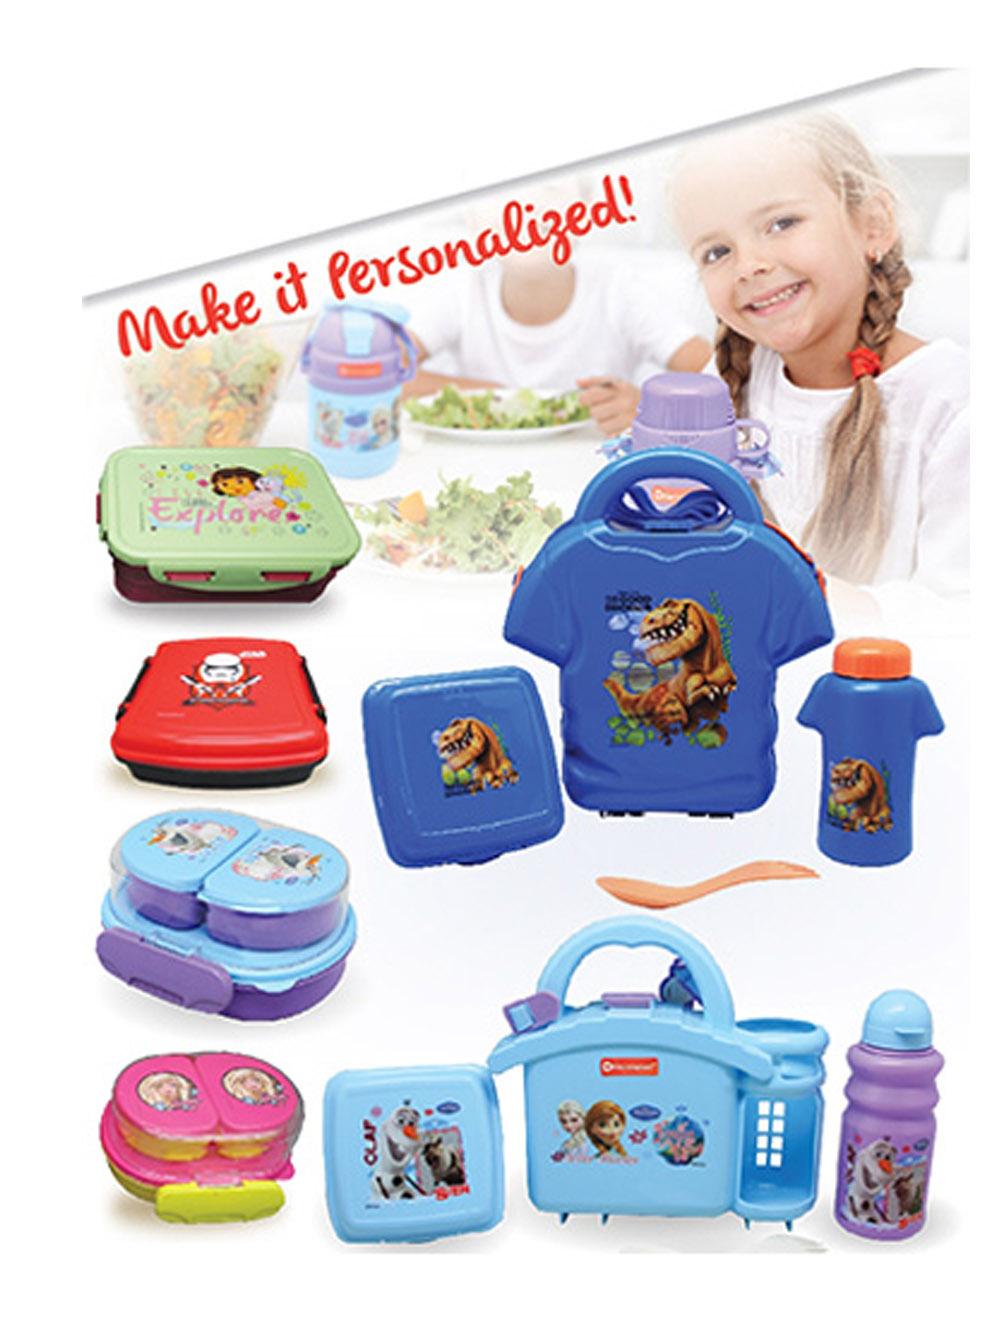 Kids School Supplies and Products